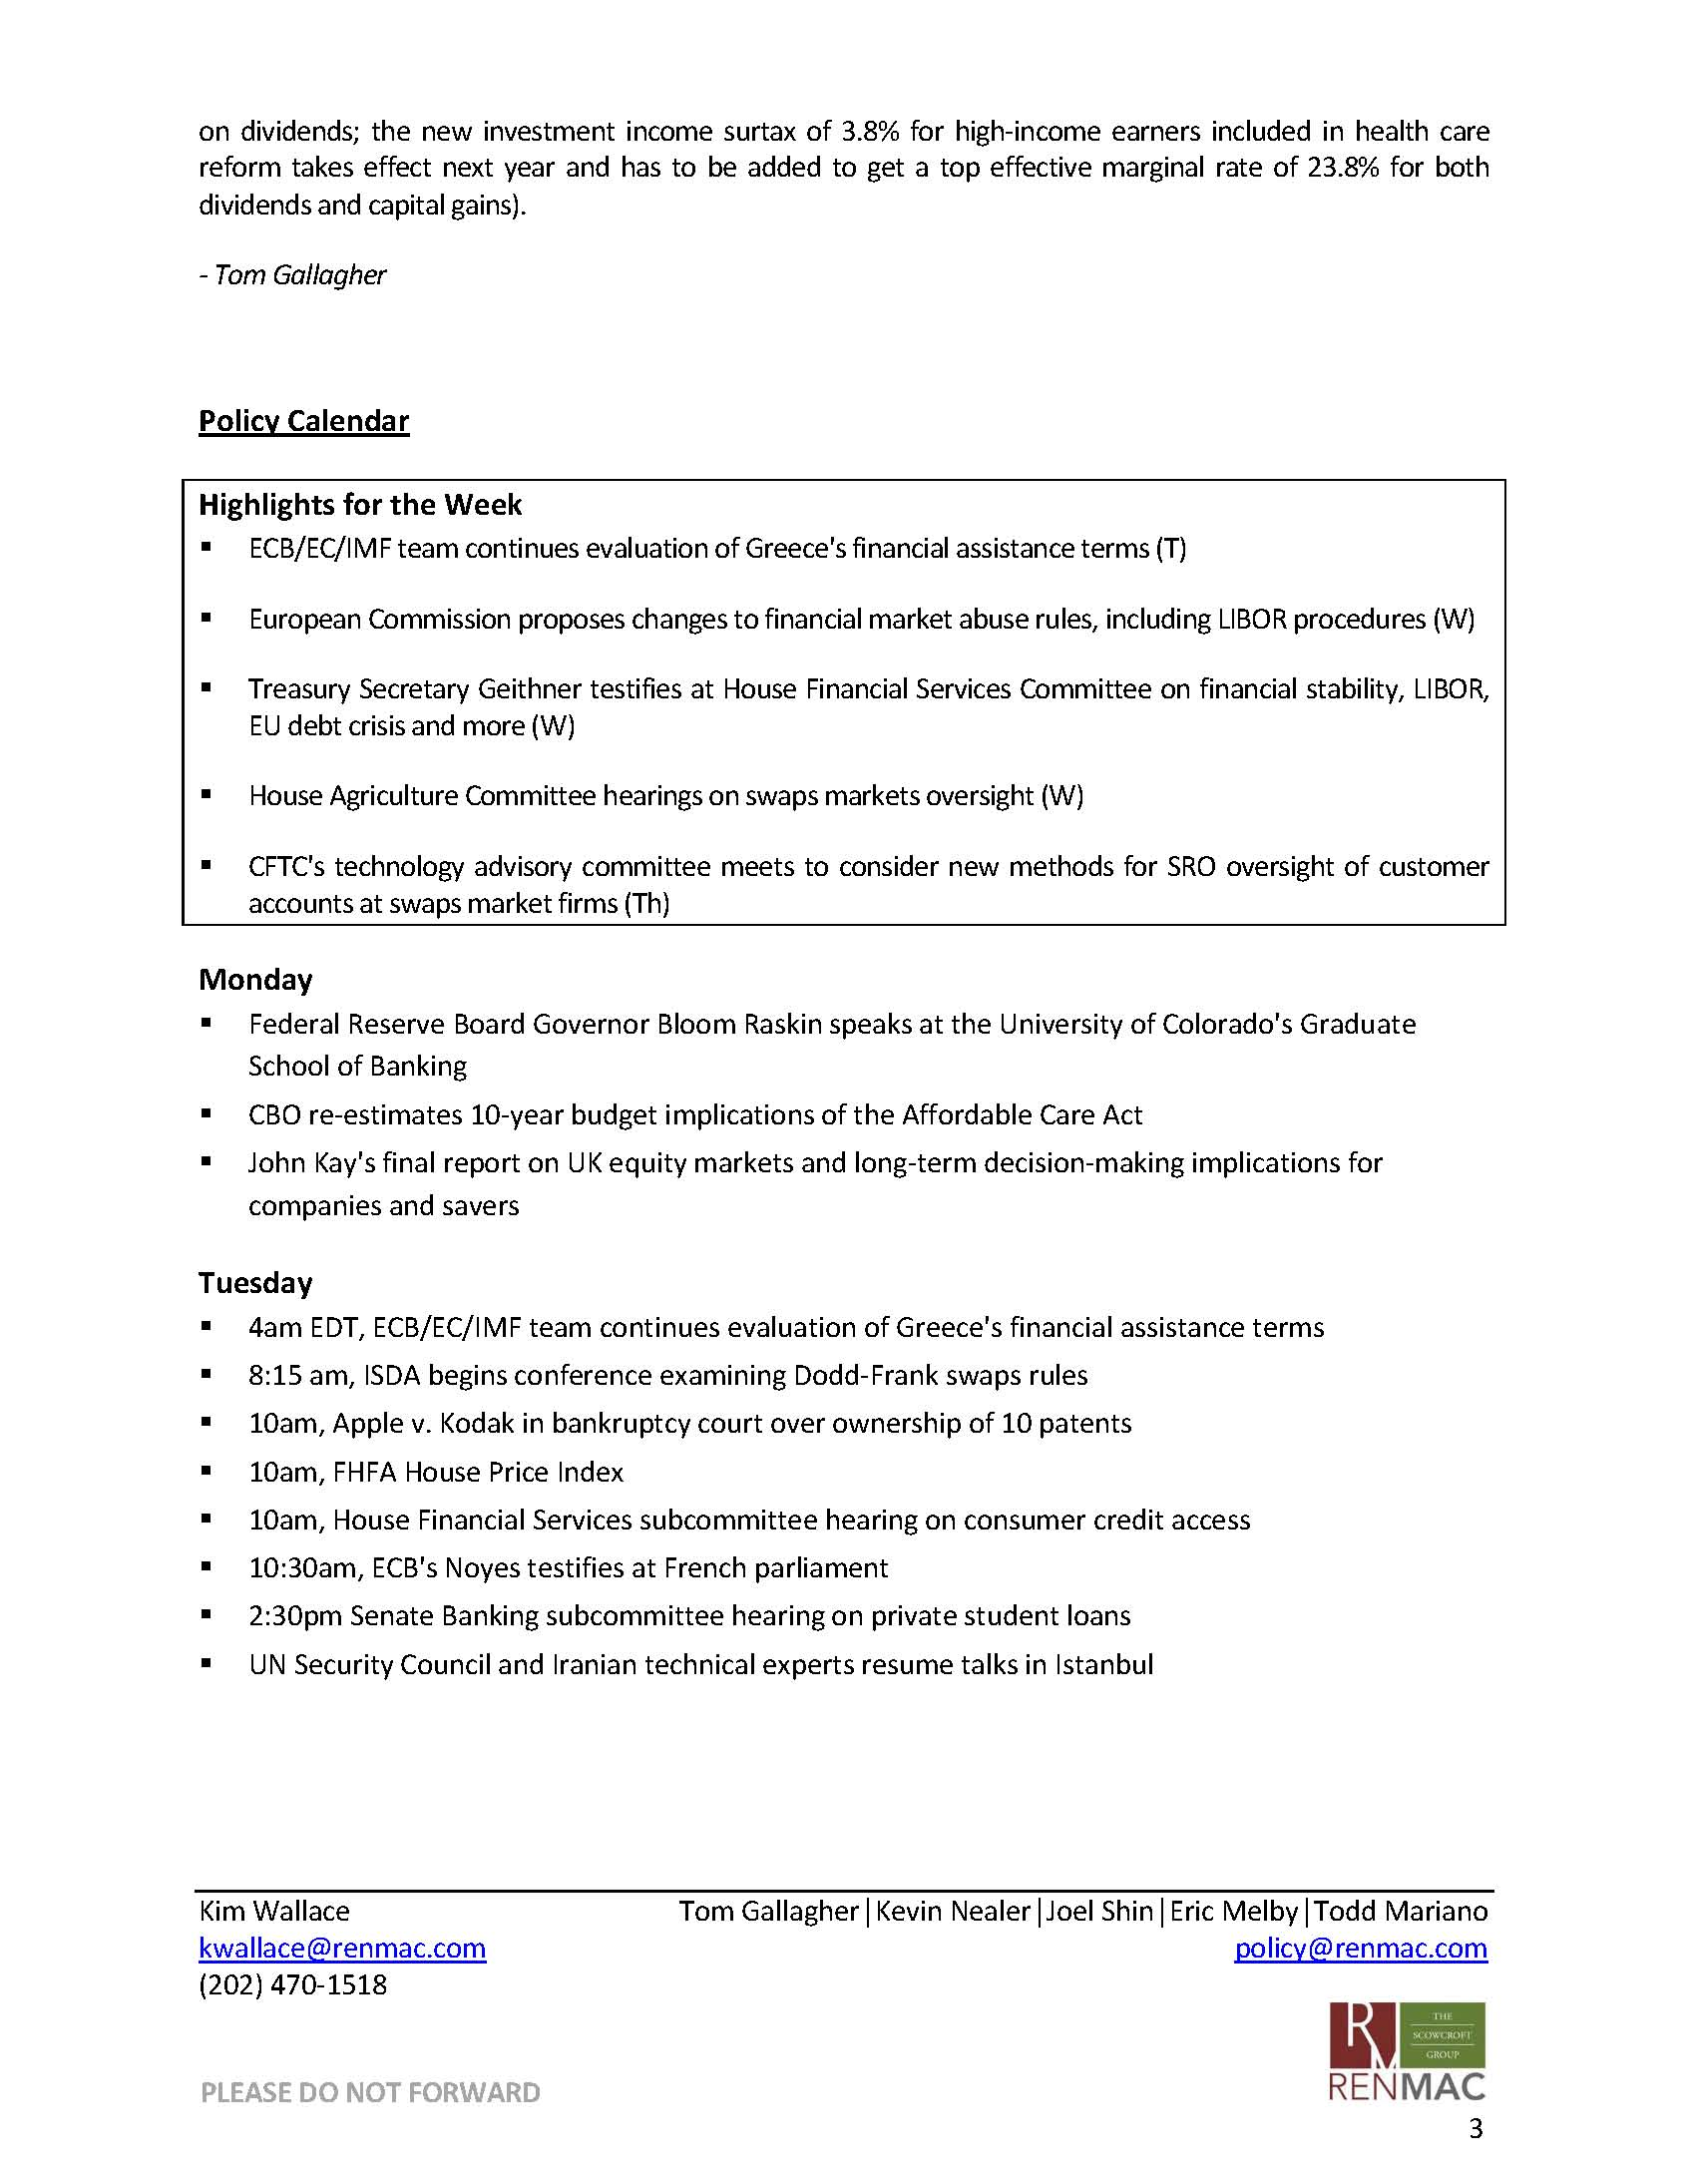 2012-07-23 WDPD_Page_3